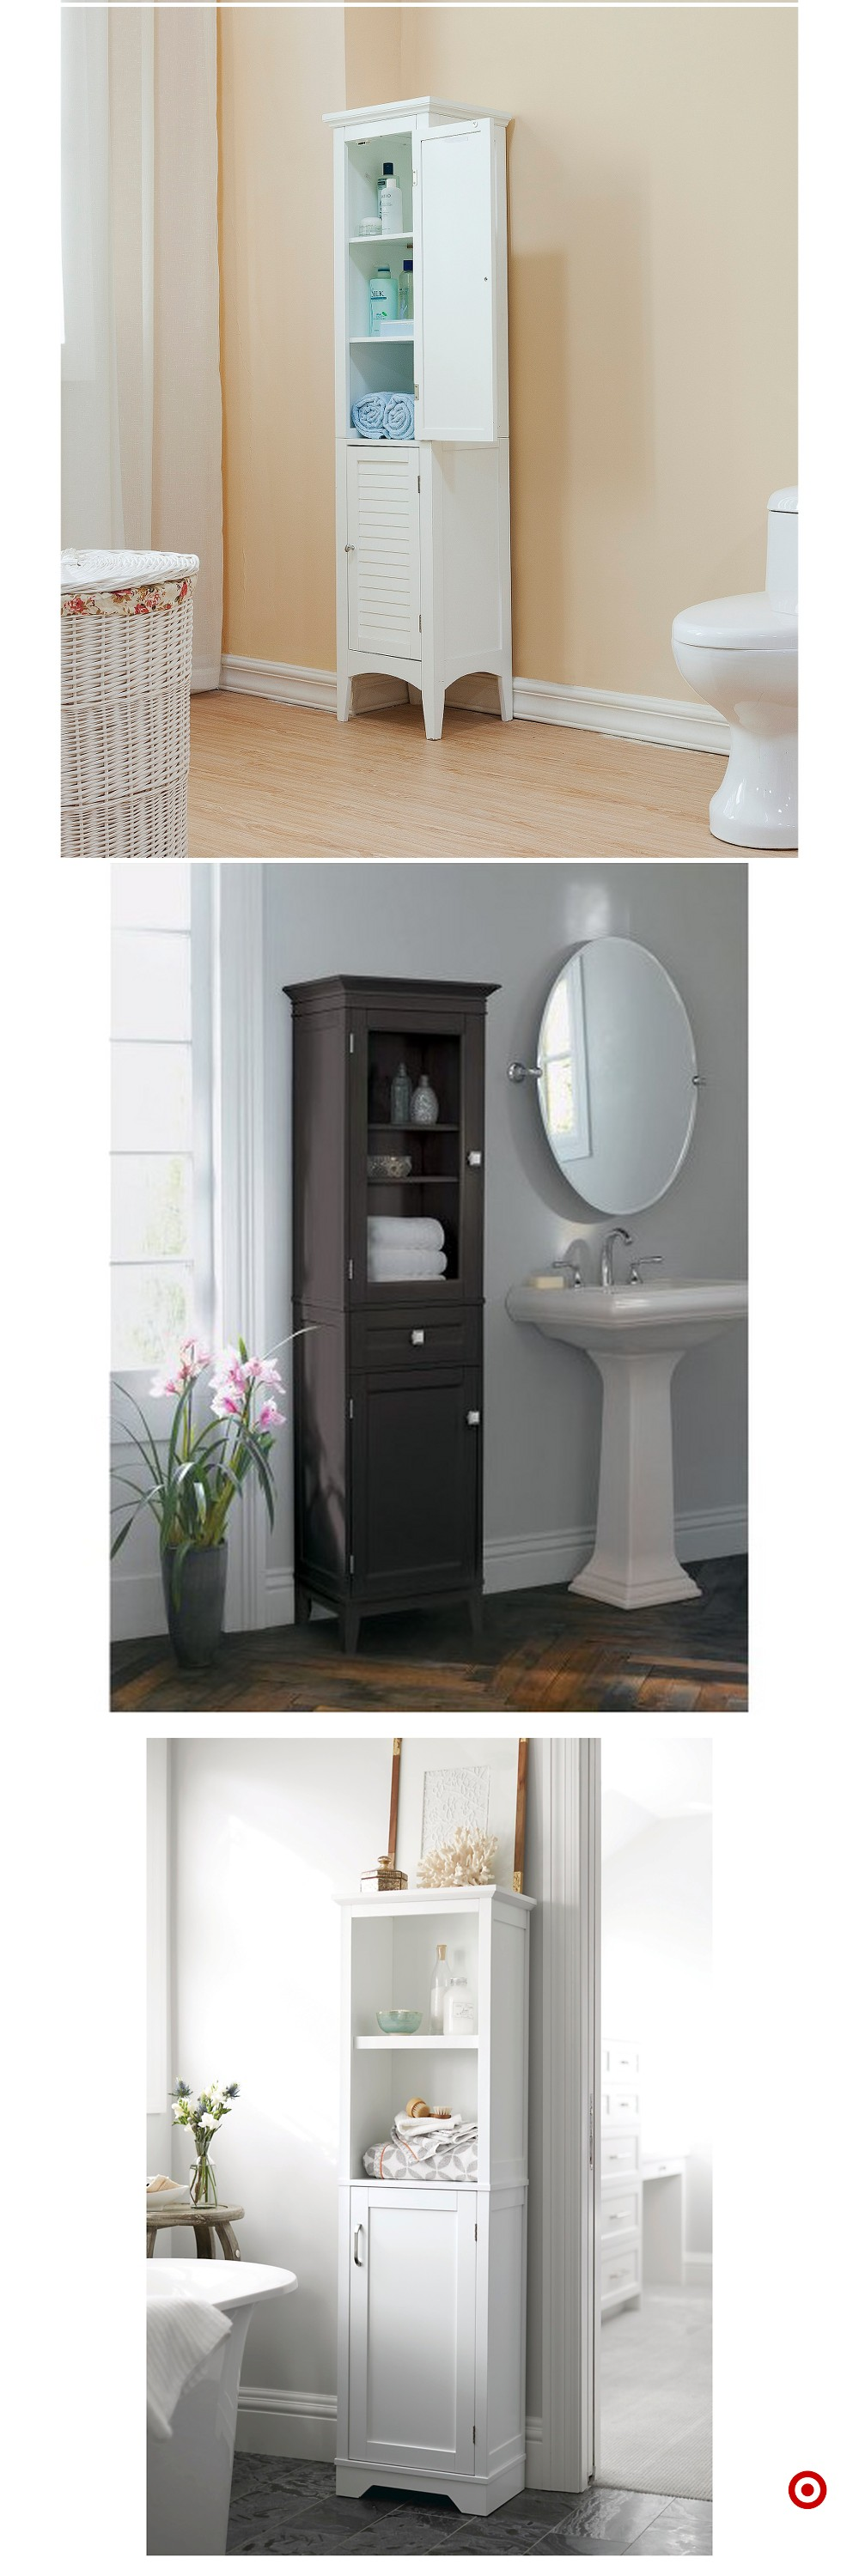 Shop Target For Linen Cabinet You Will Love At Great Low Prices Mesmerizing Bathroom Remodeling Prices Review